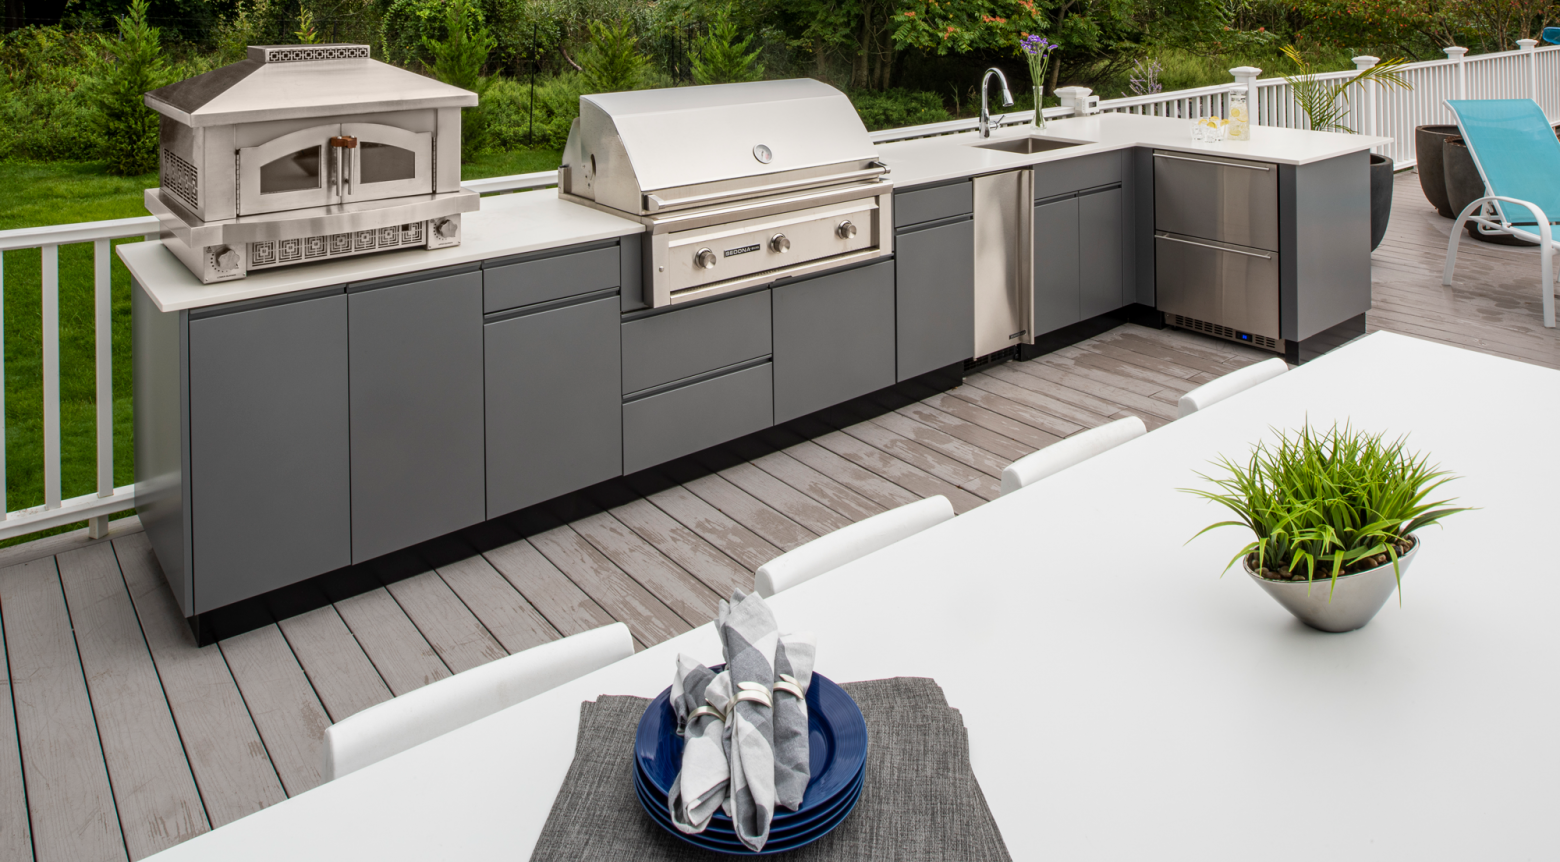 What You Need to Know Before You Buy a Prefab Outdoor Kitchen Kit